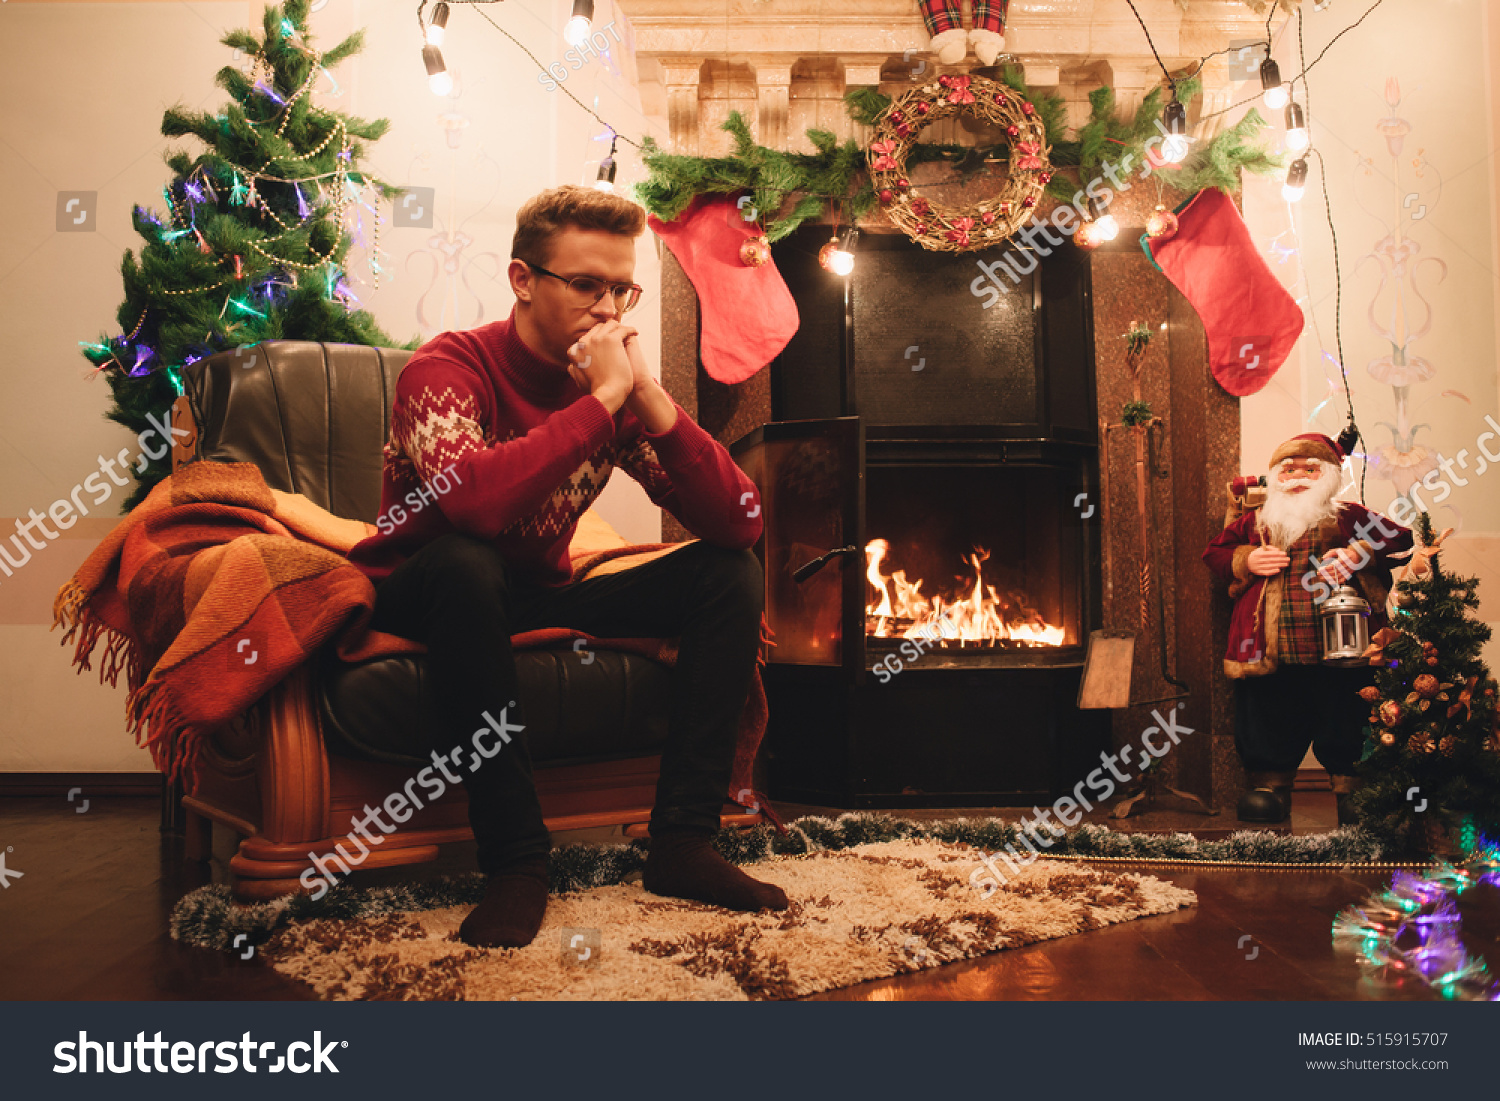 man red sweater sitting front fireplace stock photo 515915707